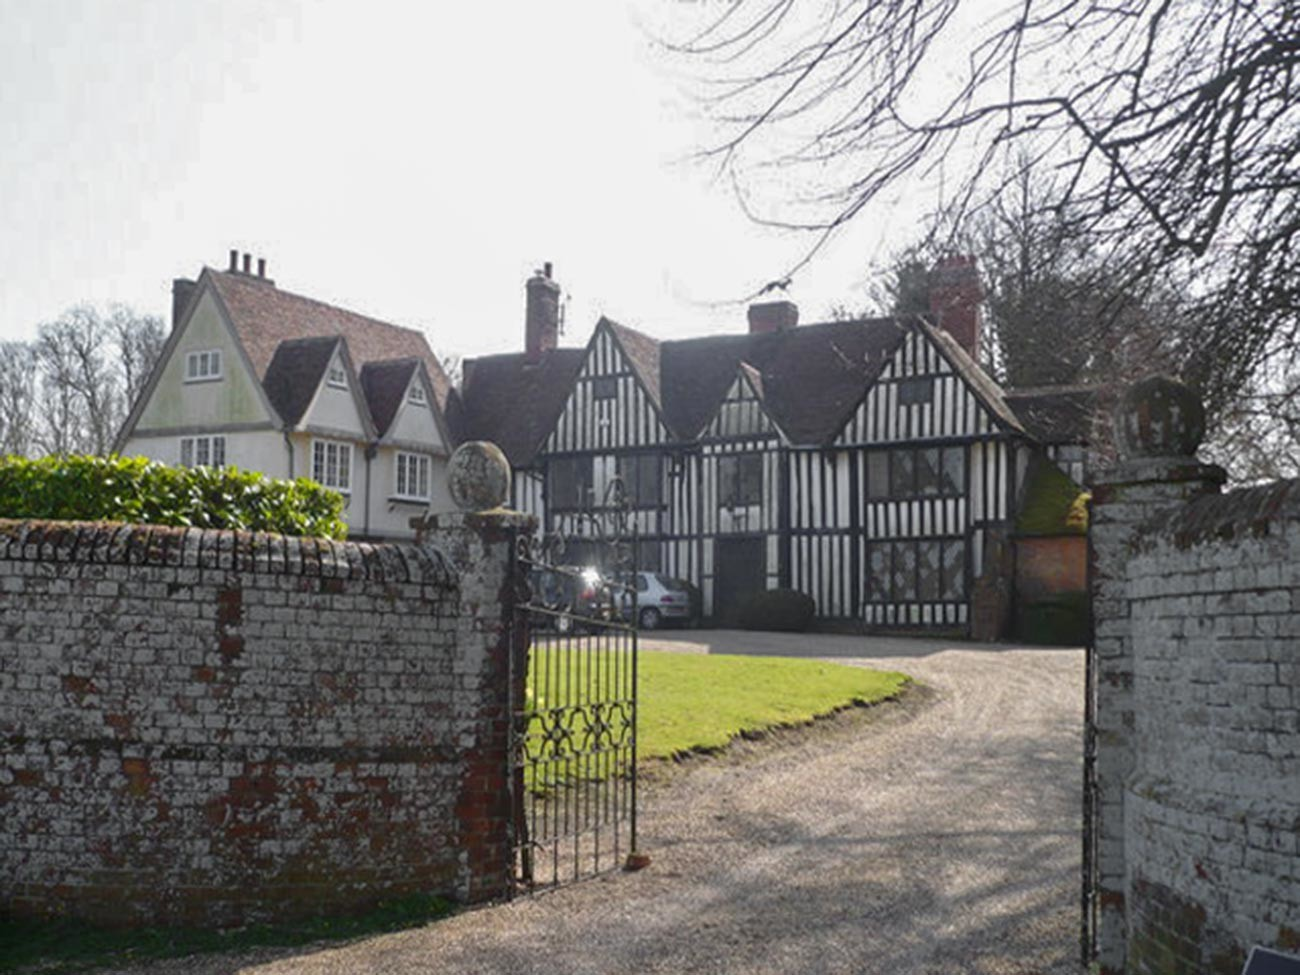 Provender, a medieval house on Provender Road. It is now owned by a descendant of the Russian Romanoff family, Princess Olga Romanoff and, with the help of English Heritage and architect Ptolemy Dean, it is being restored to its former glory.